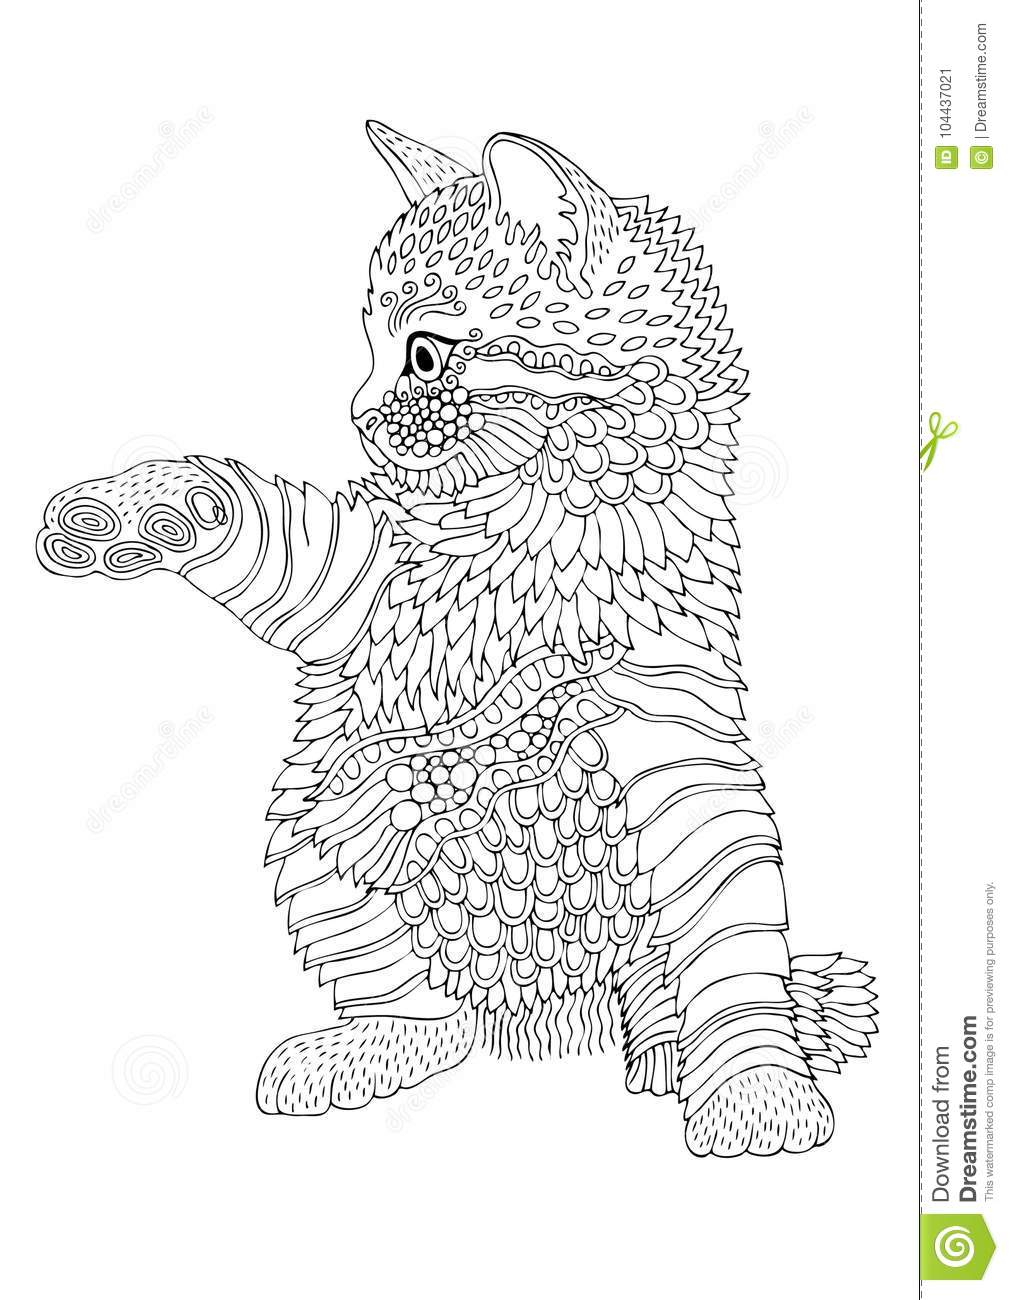 Hand Drawn Kitten. Sketch For Anti-stress Coloring Page ...